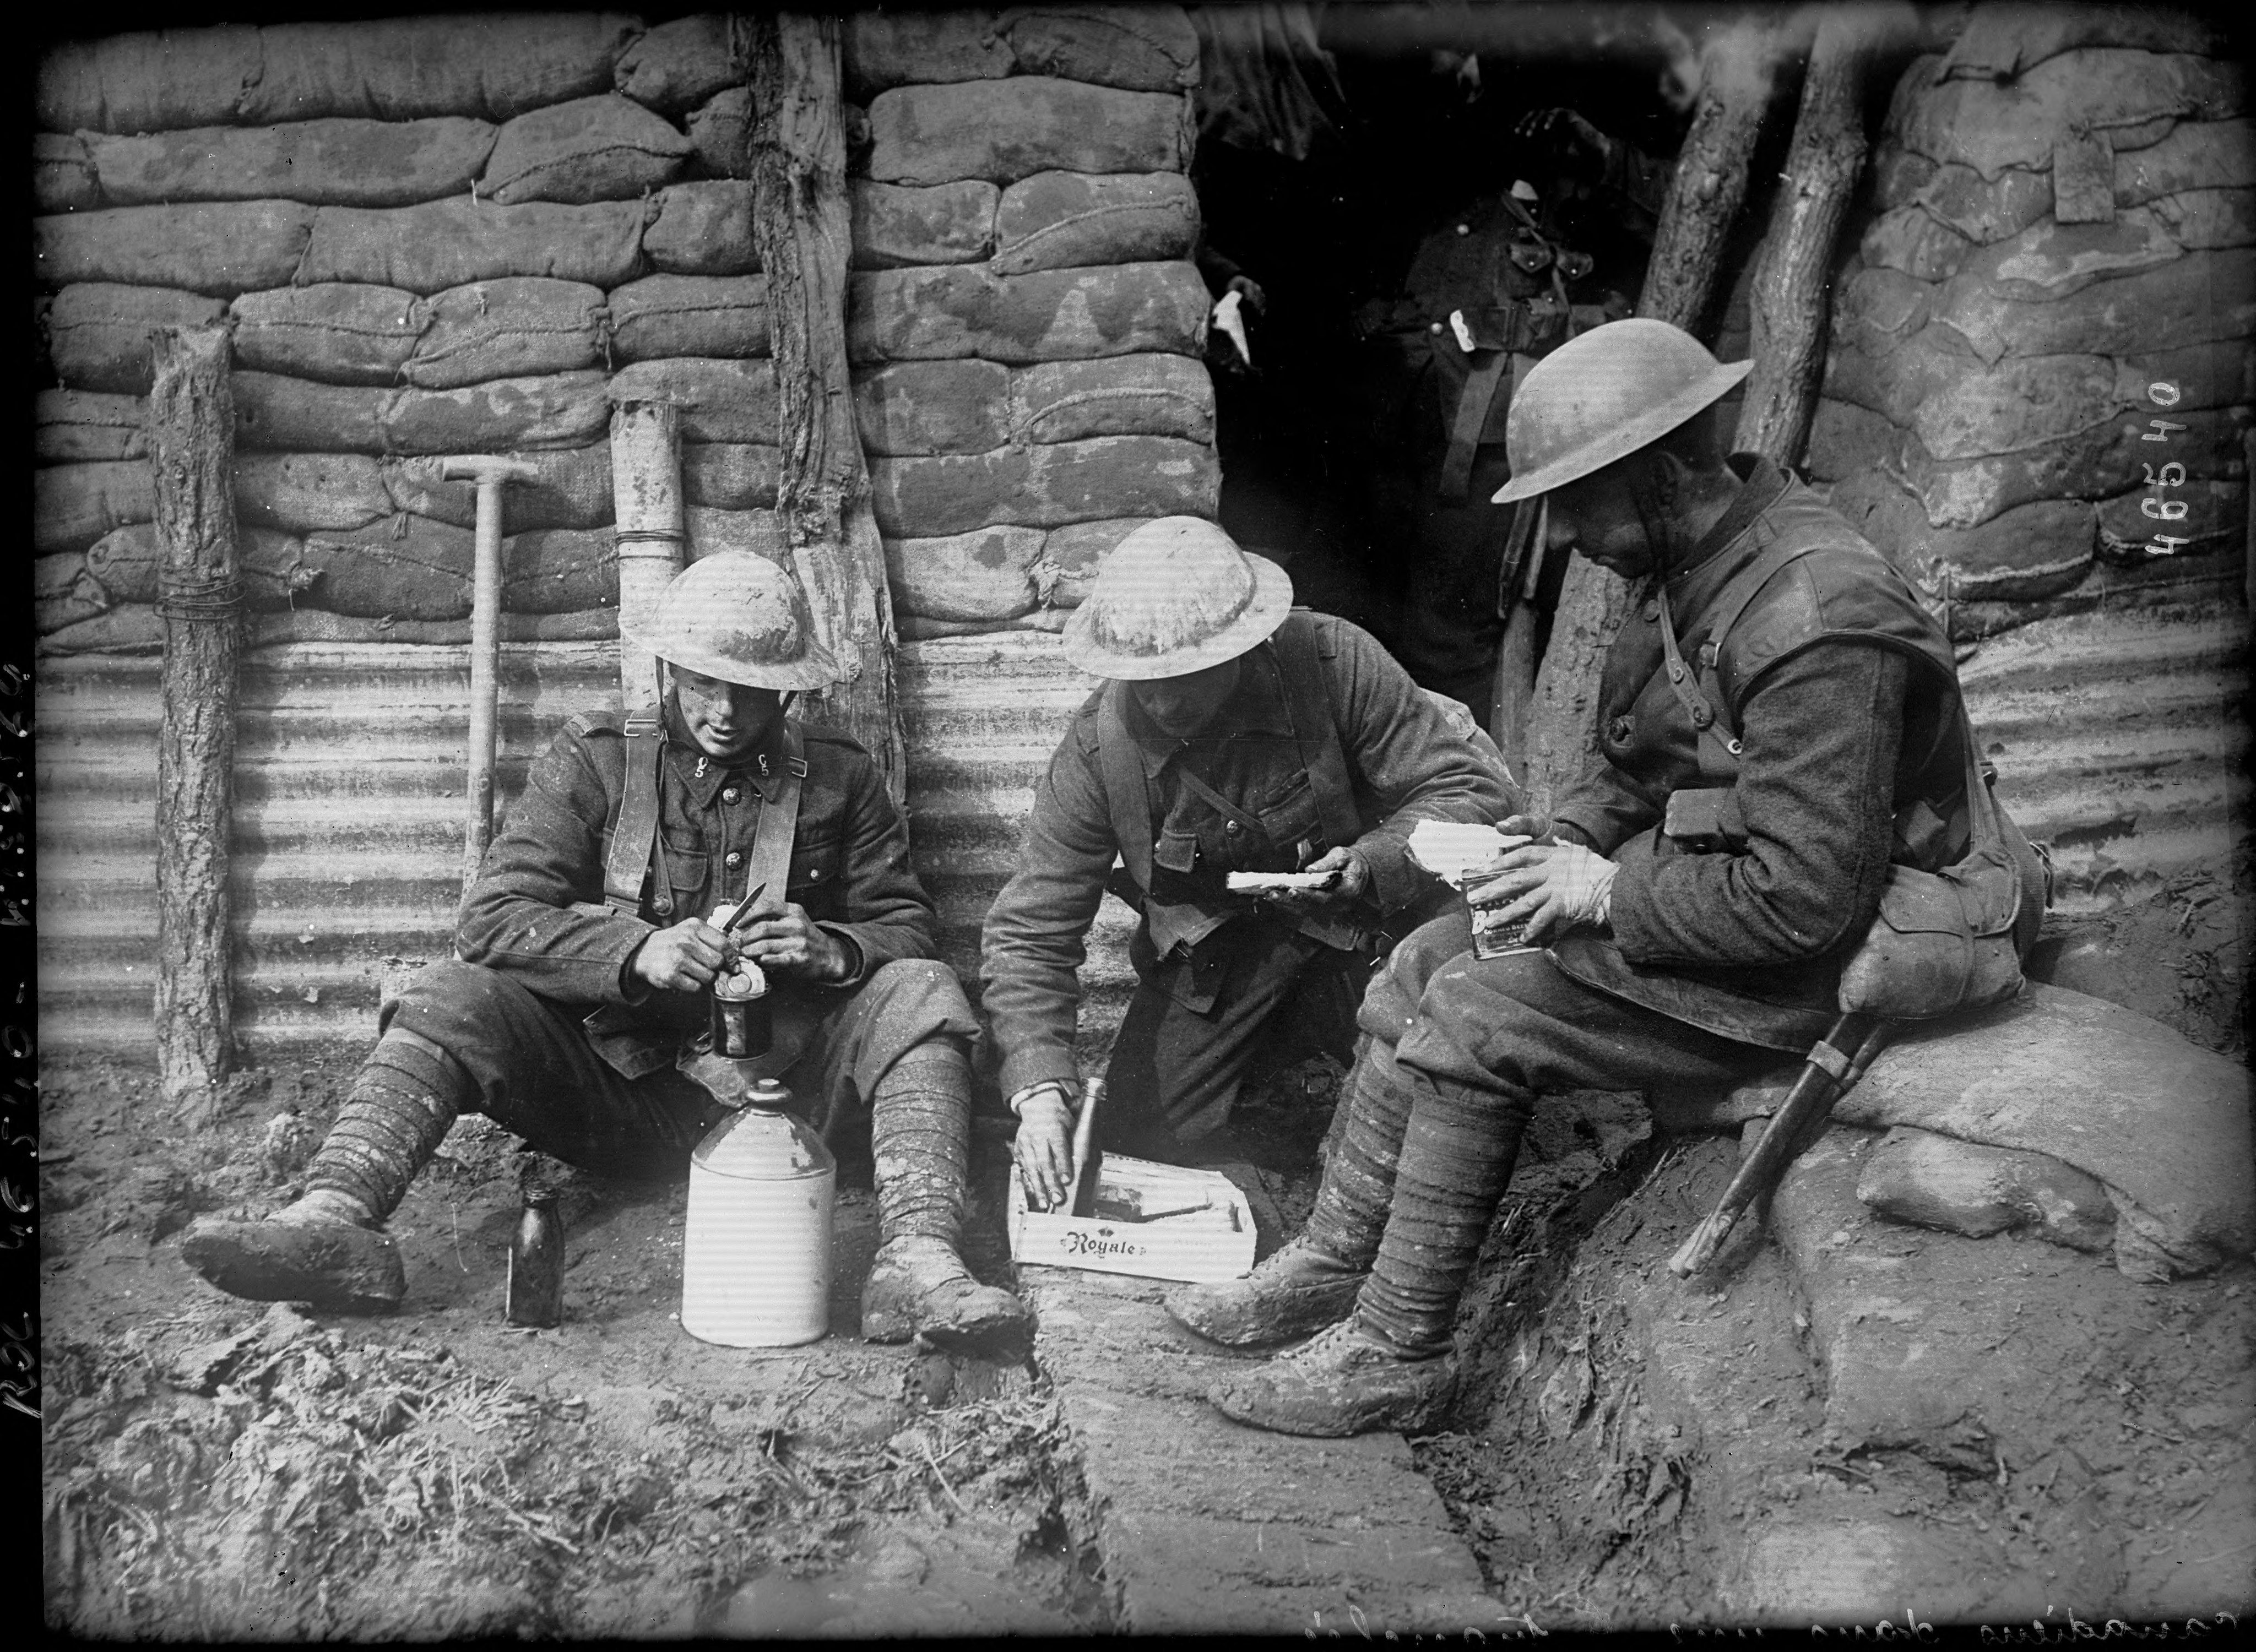 Canadian Soldiers in the trenches of Flanders Fields